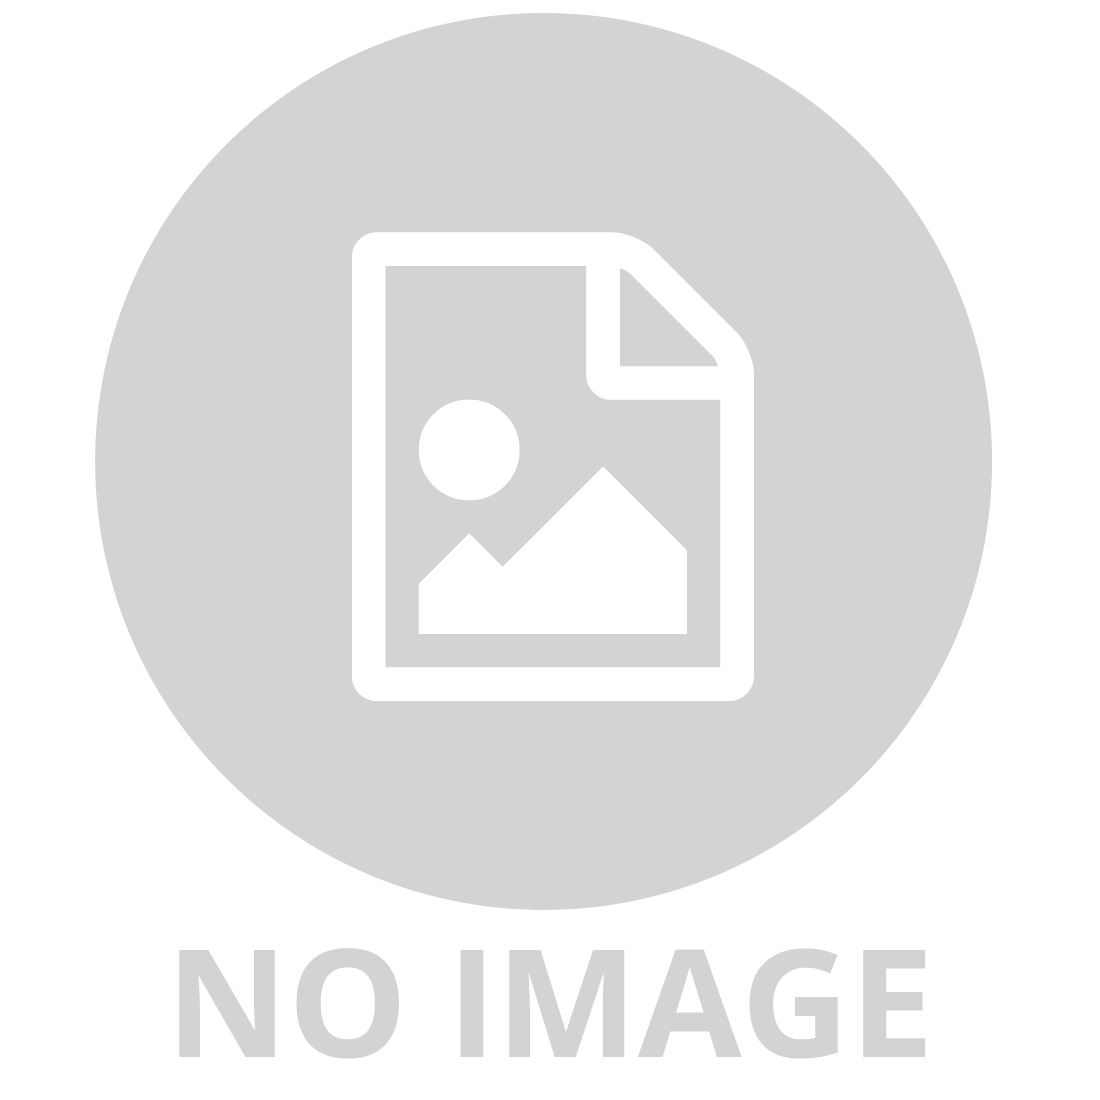 Domino 3in1 Bathroom Heather Silver BH151ESWSL